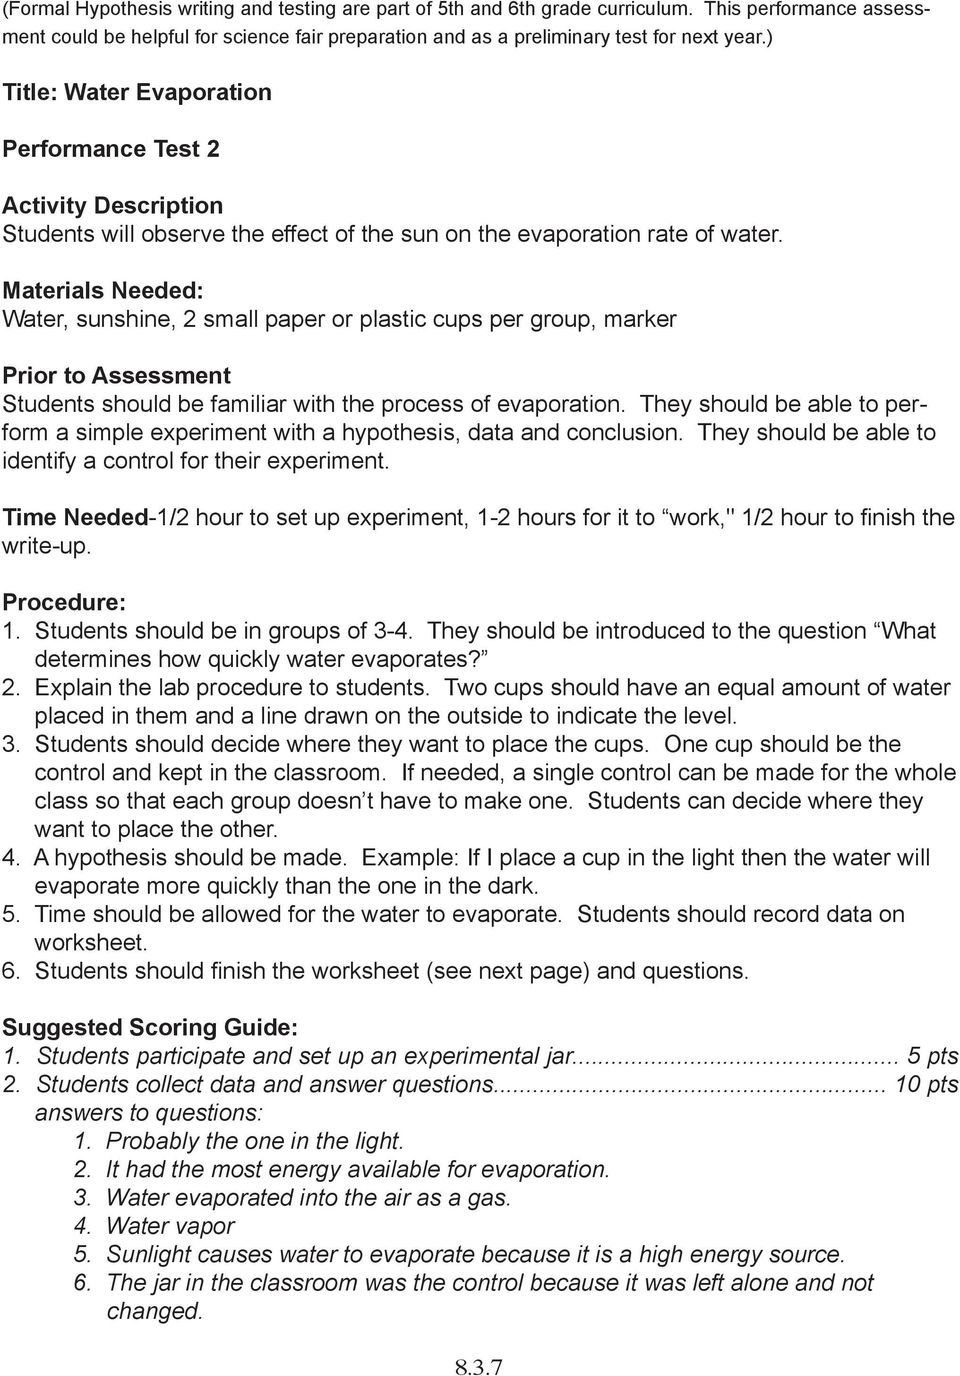 Water Water Everywhere Worksheet Answers  Briefencounters Inside Water Water Everywhere Worksheet Answers